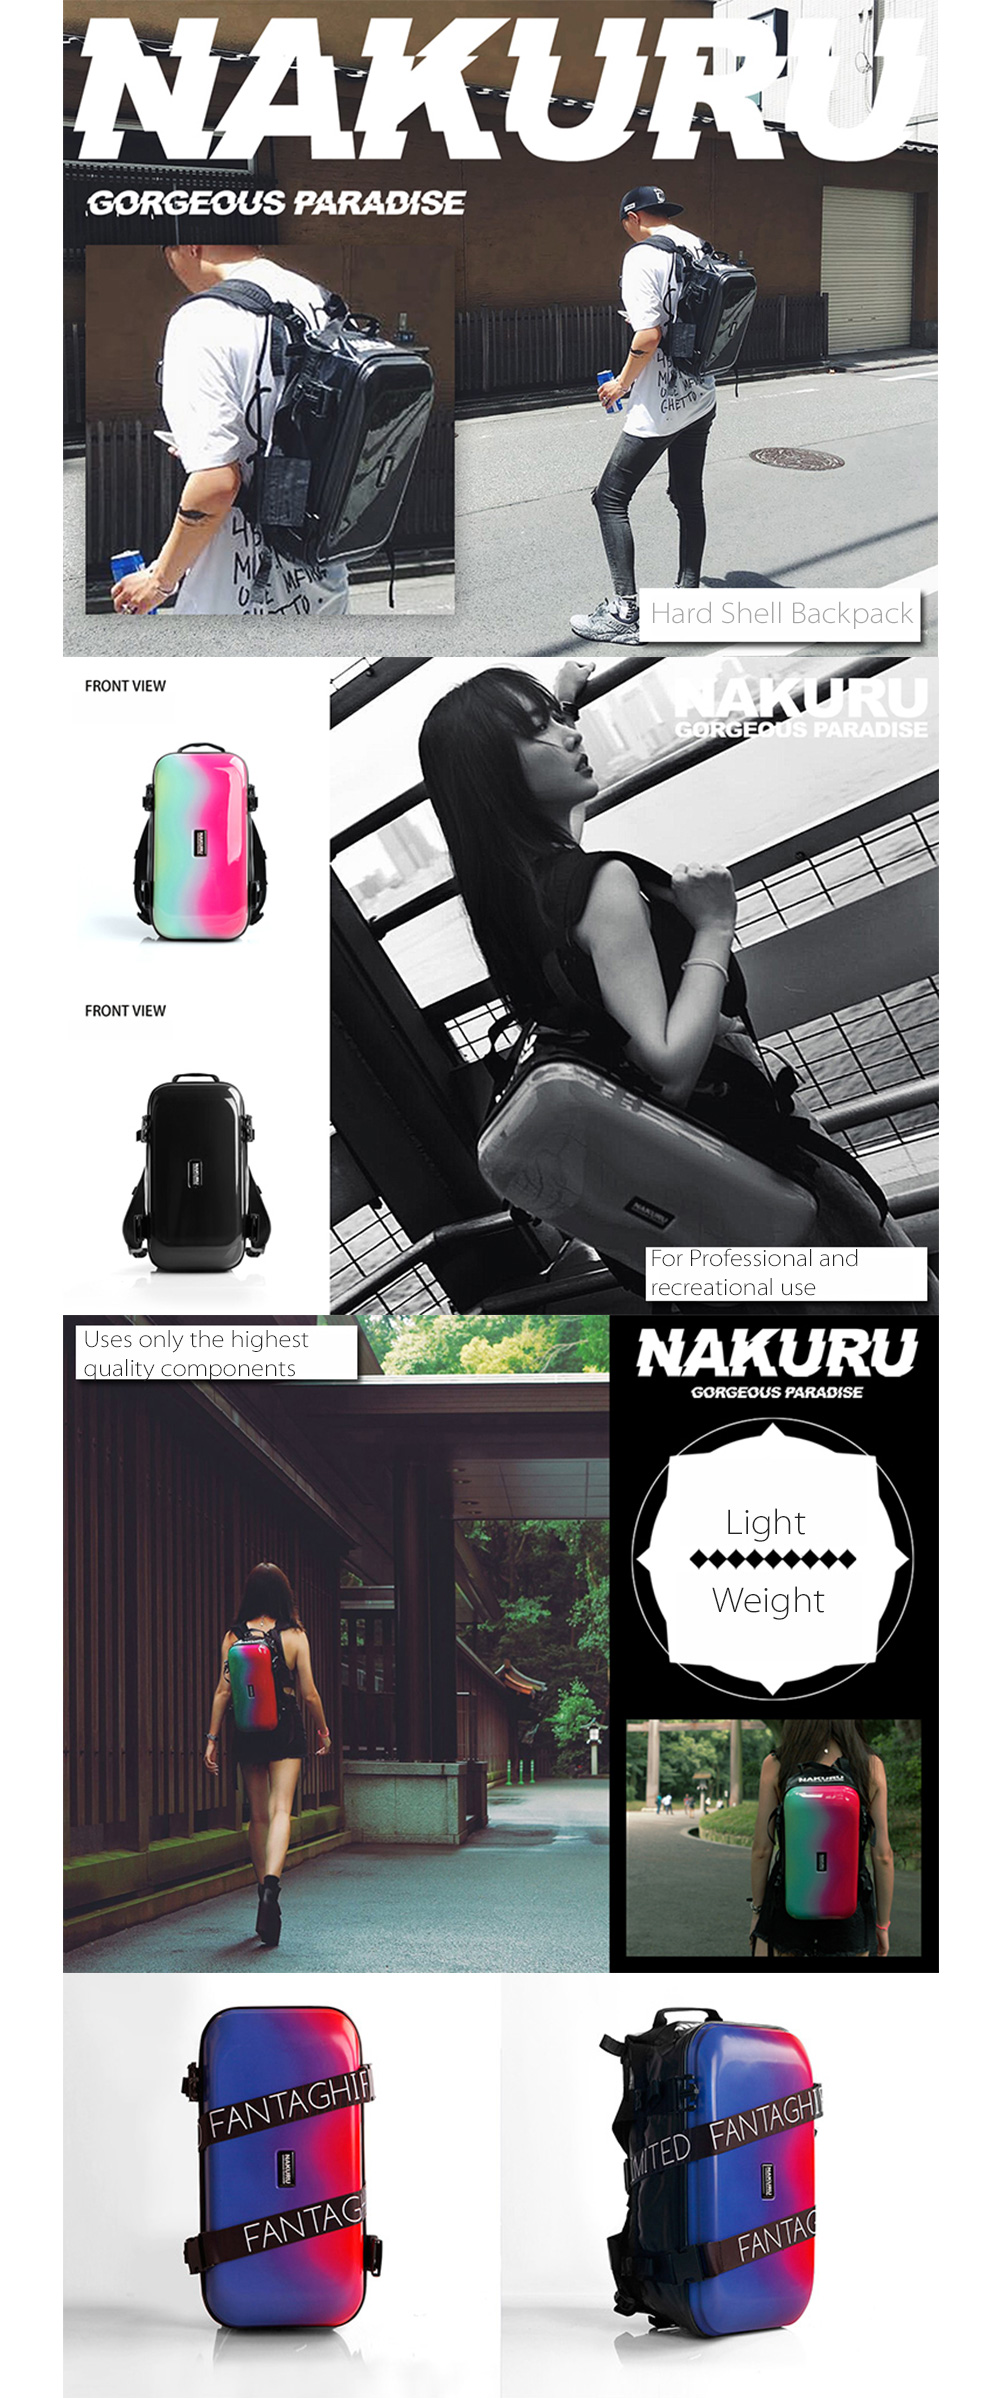 Nakuru Backpack Fancy